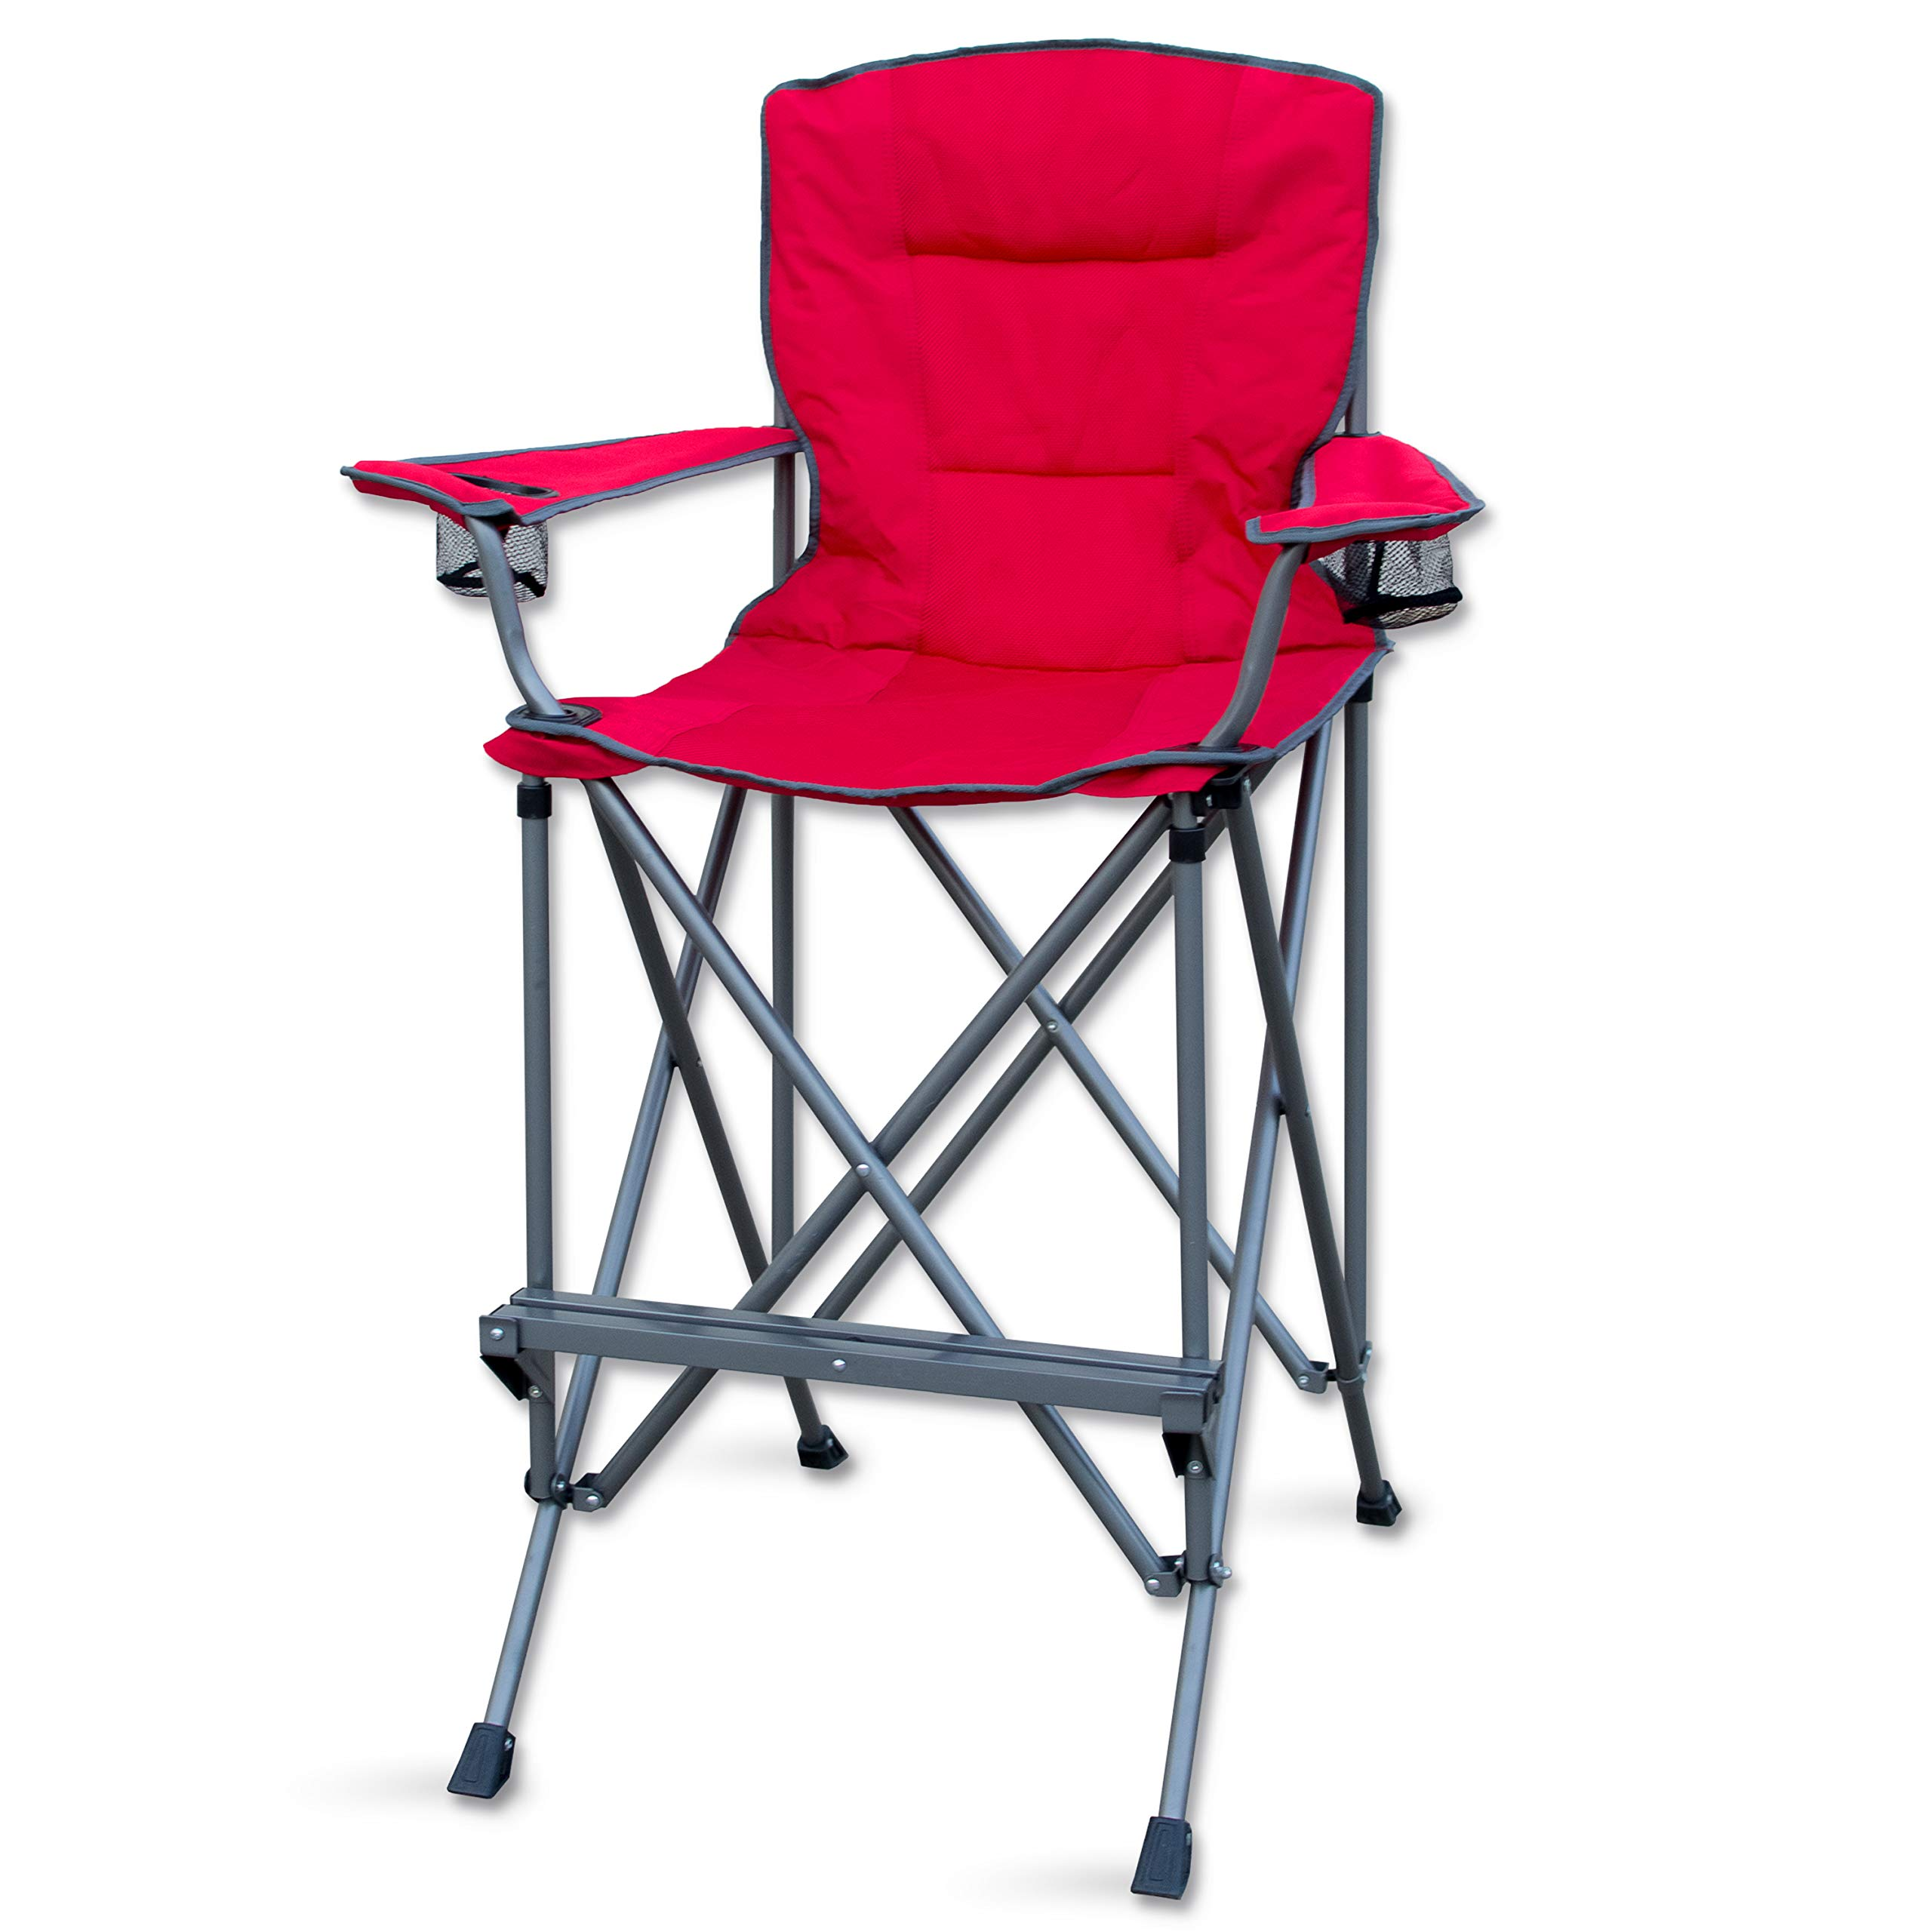 RMS Outdoors Extra Tall Folding Chair - Bar Height Director Chair for Camping, Home Patio and Sports - Portable and Collapsible with Footrest and Carrying Bag - Up to 300 lbs Weight Capacity (Red) by RMS Royal Medical Solutions, Inc.